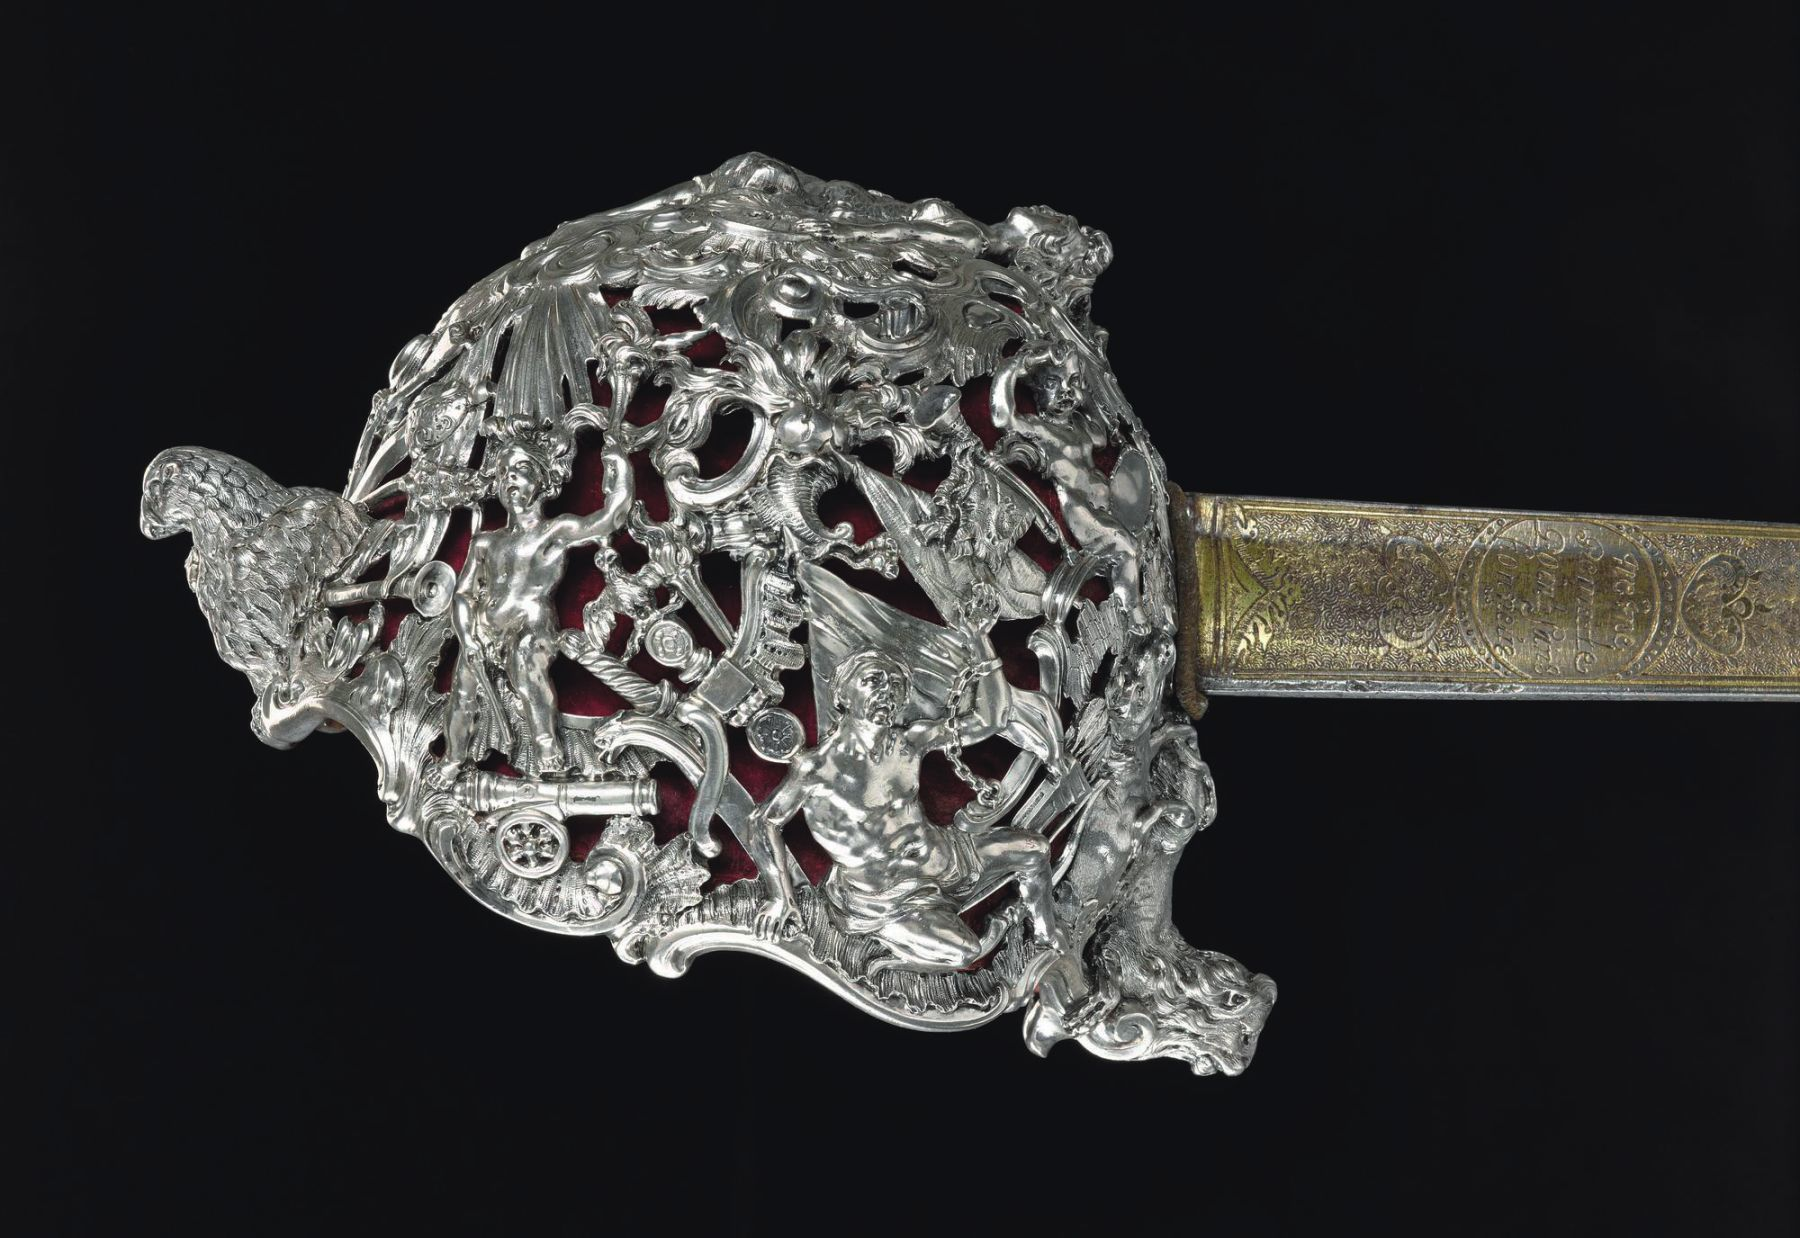 The intricately decorated sword borne by Bonnie Prince Charlie at Culloden.